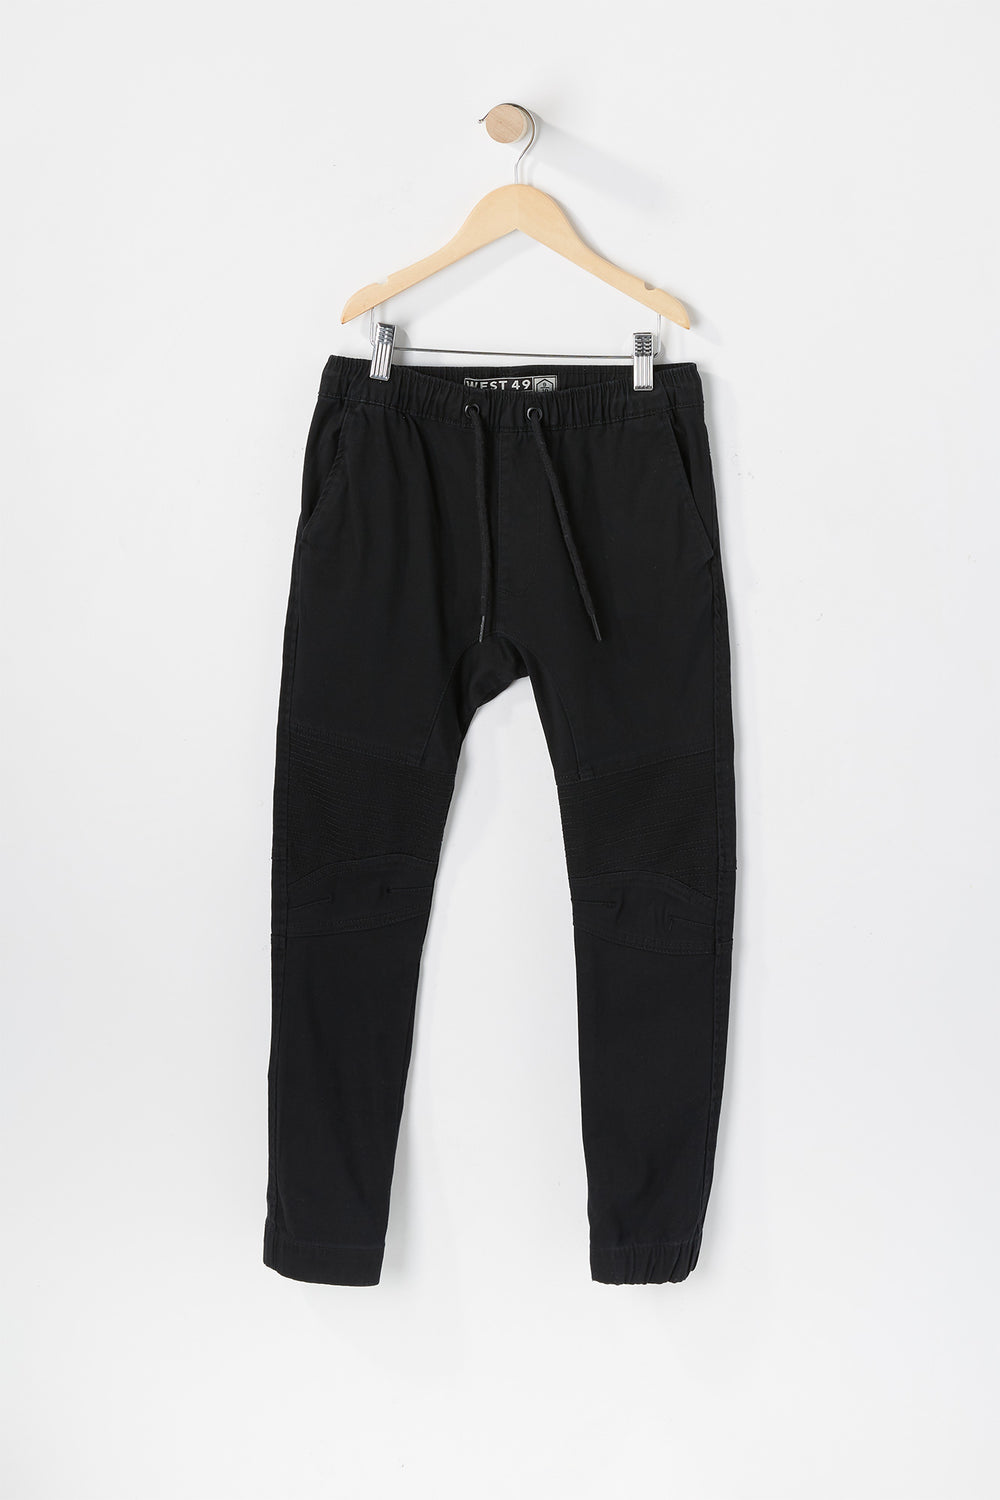 Jogger Moto West49 Junior Noir